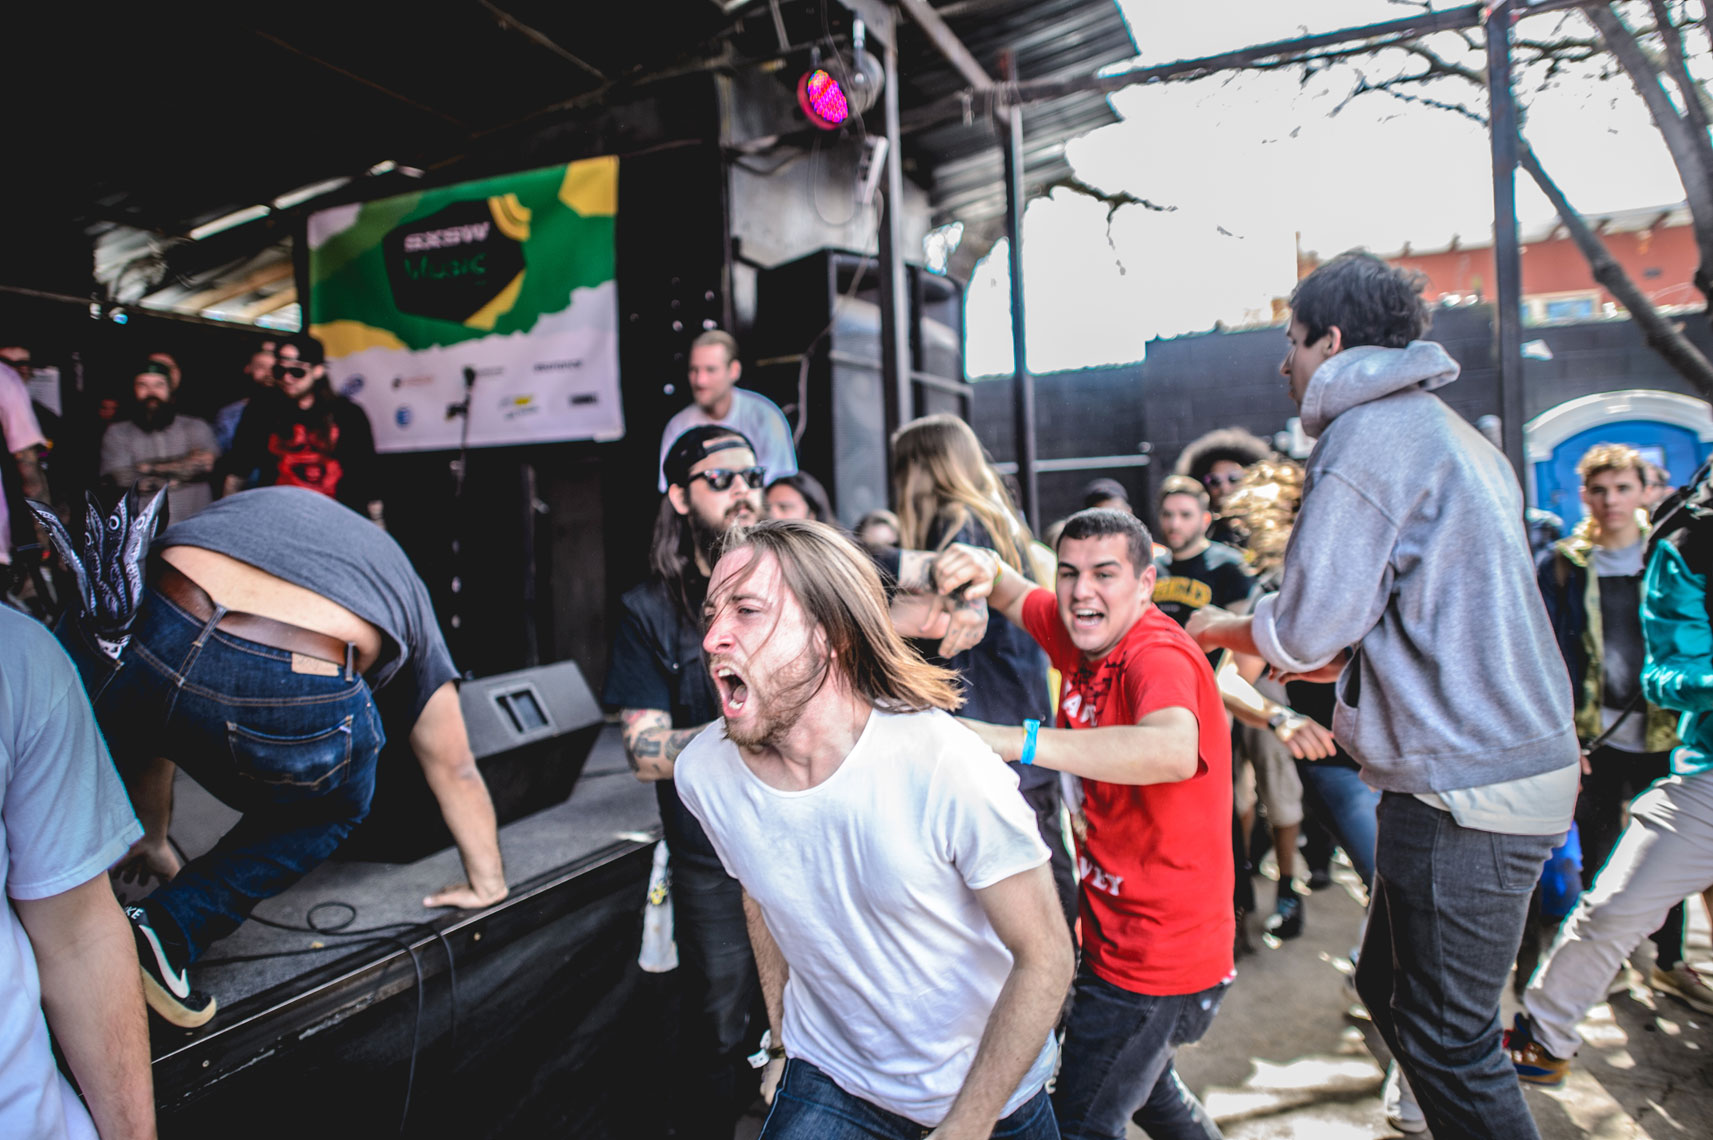 Trash-Talk-performs-at-Red-7-during-SXSW-2014-7-1